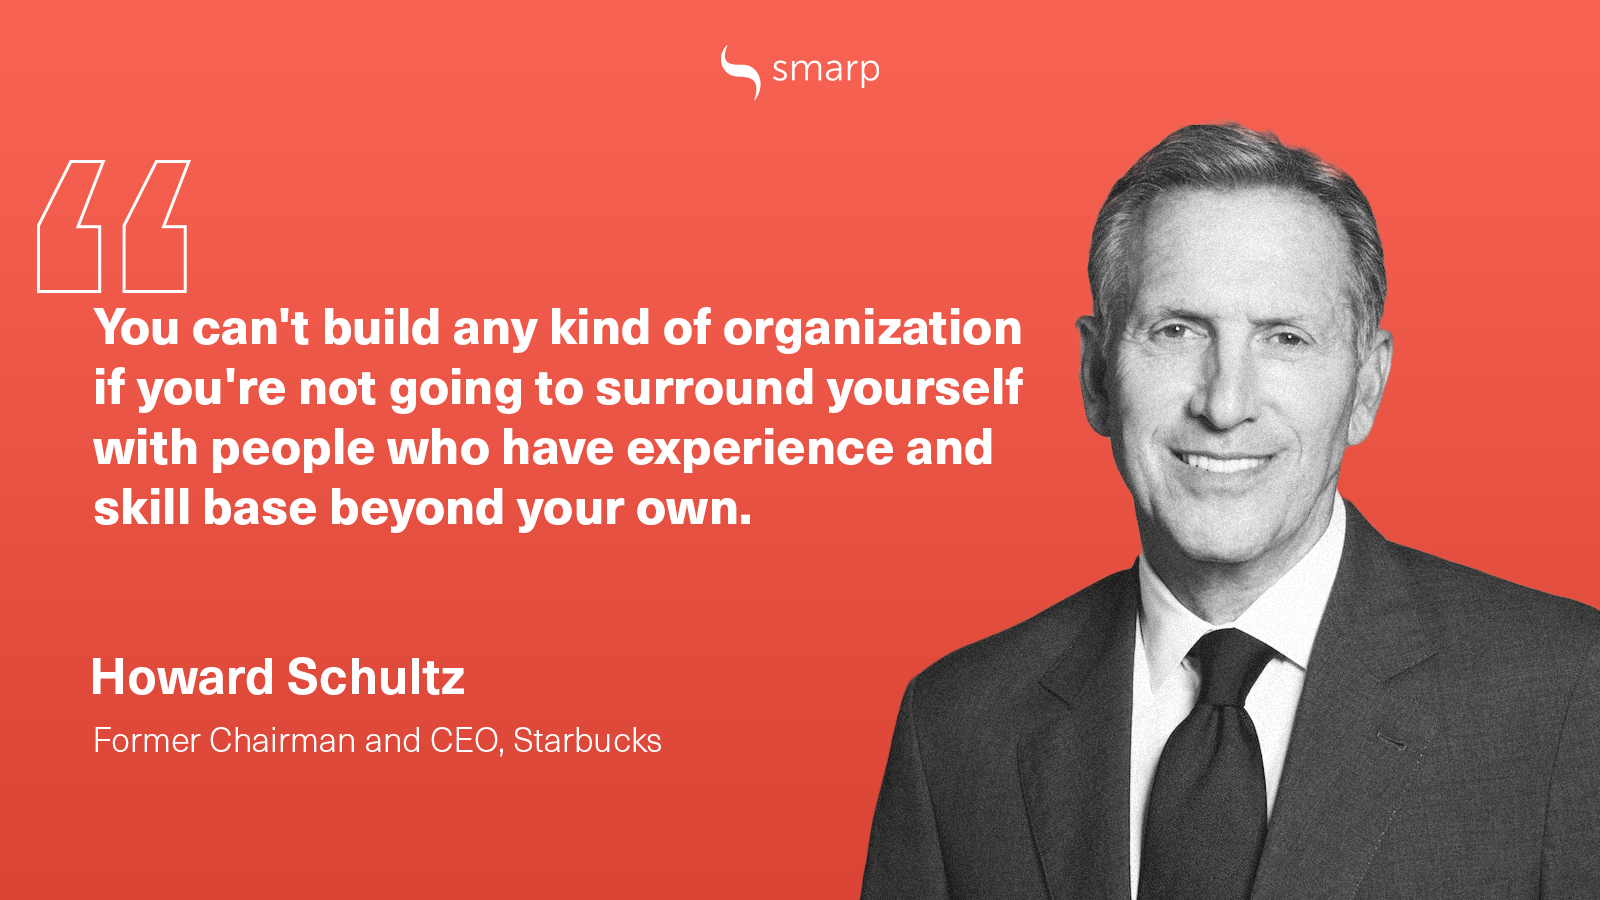 howard schultz on being a successful leader